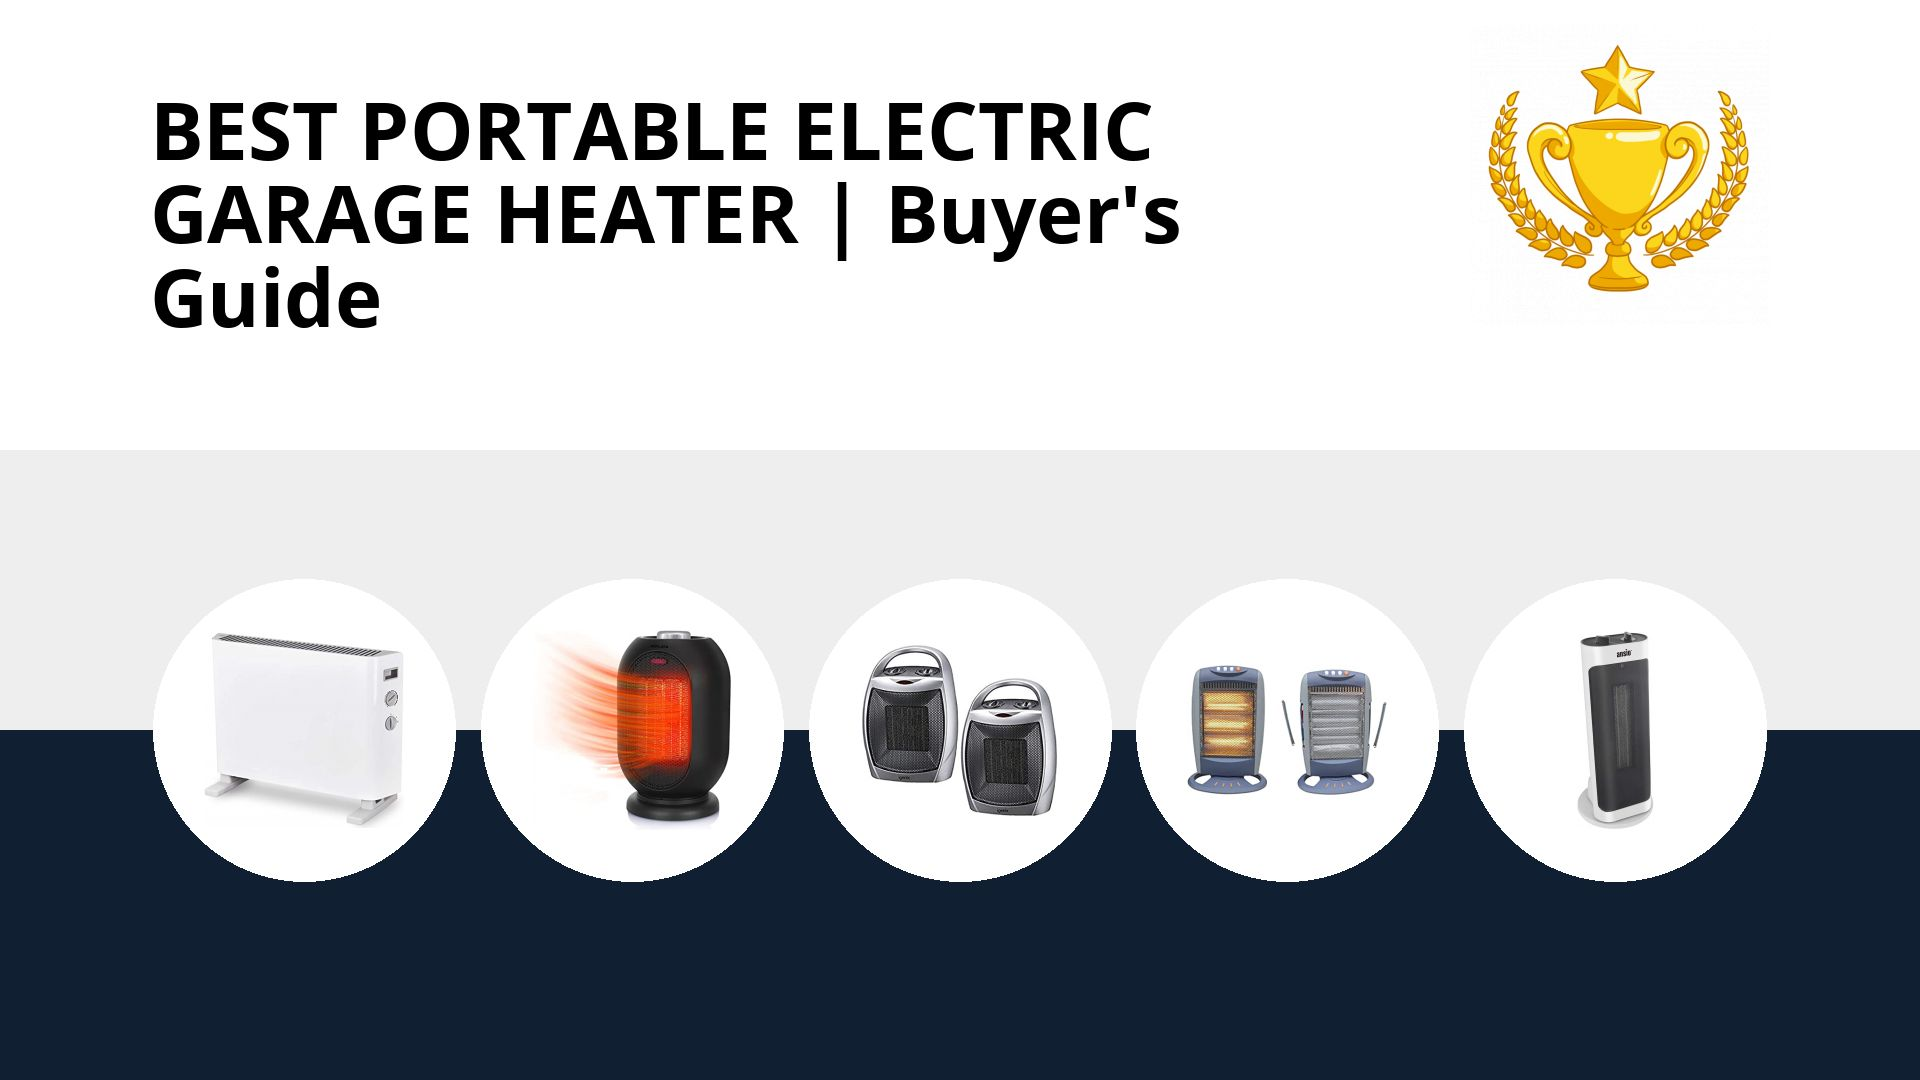 Best Portable Electric Garage Heater: image